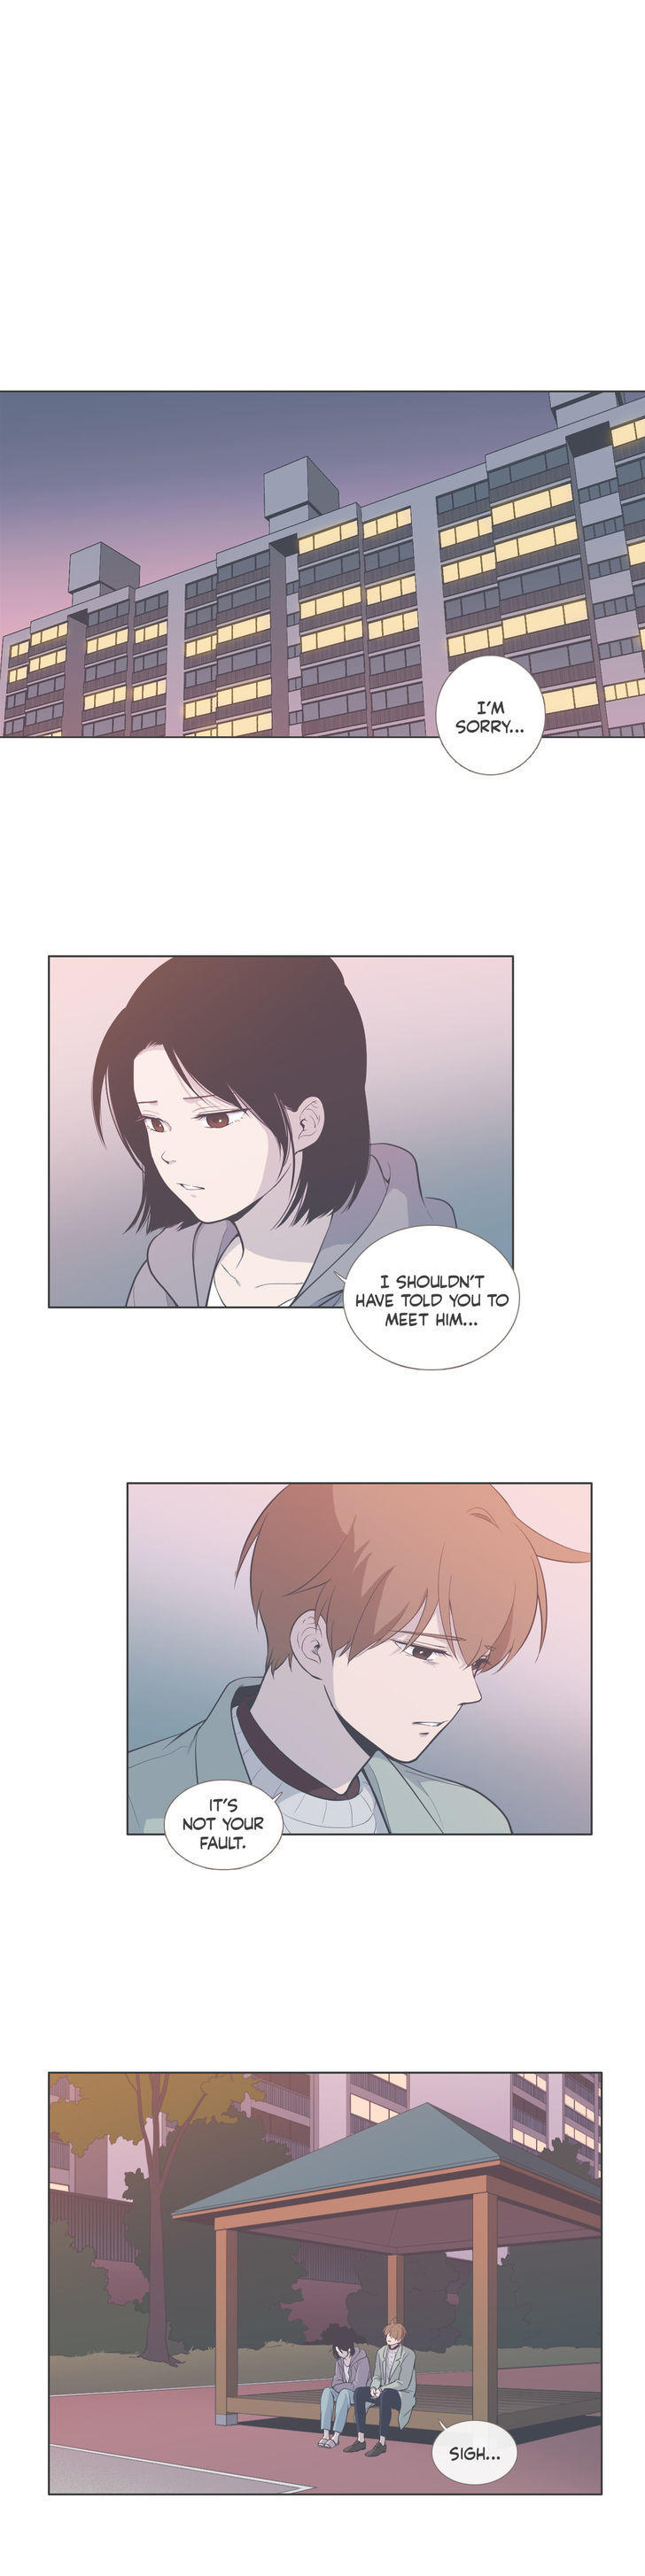 Our Relationship Is... Chapter 68 page 1